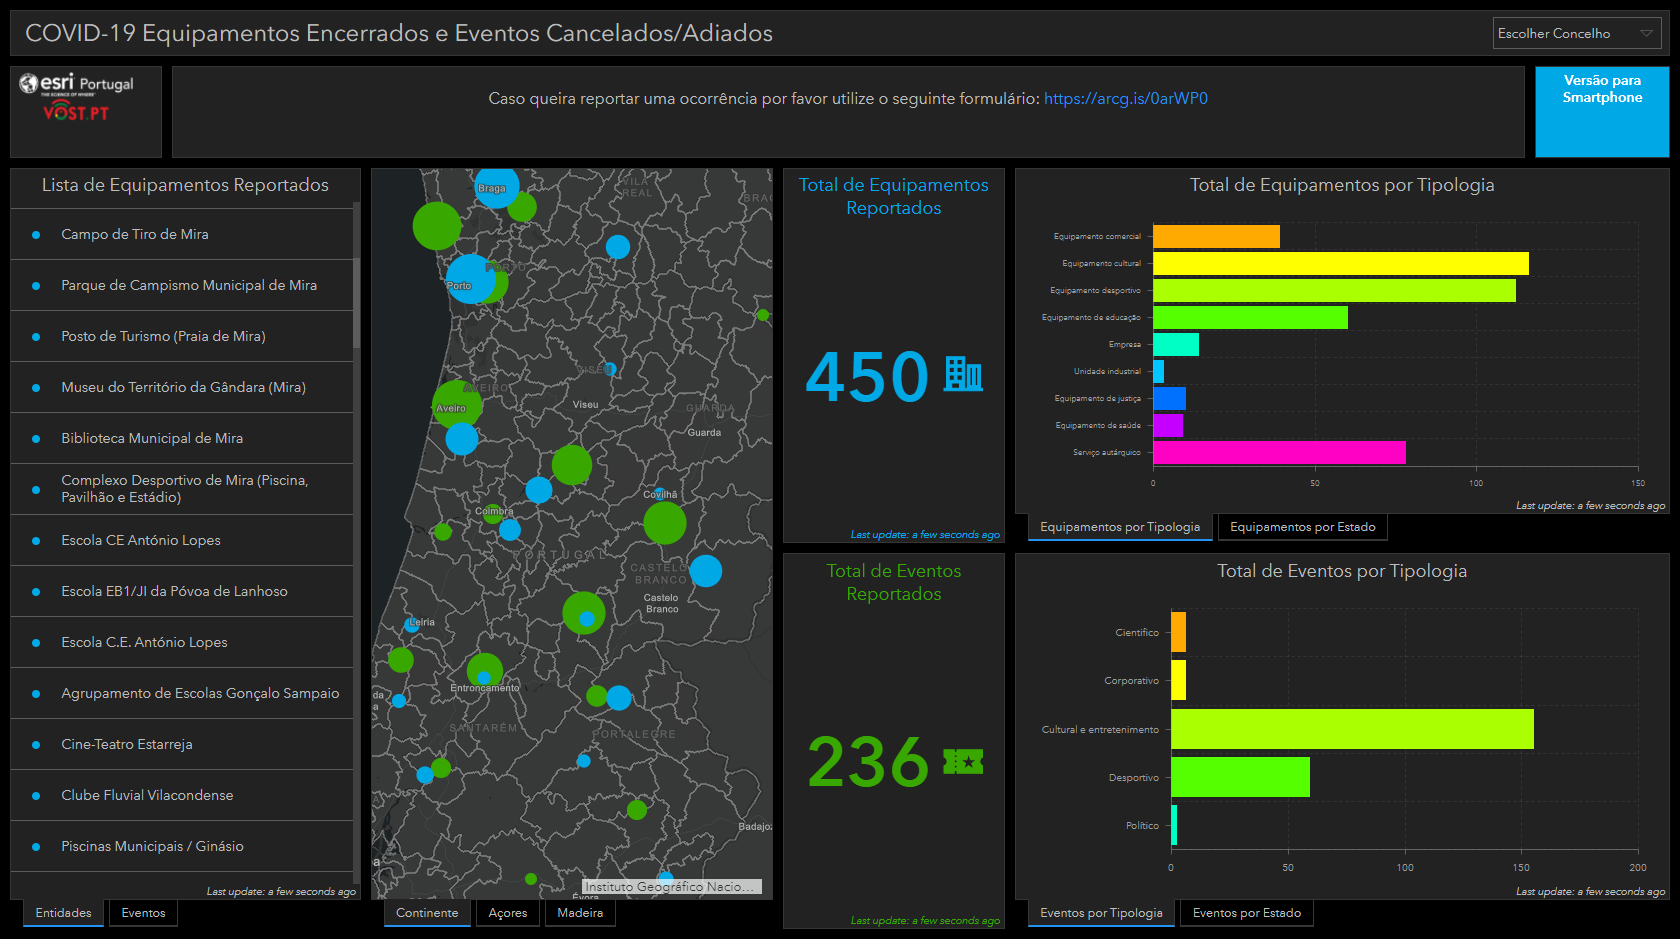 Affected events and facilities dashboard